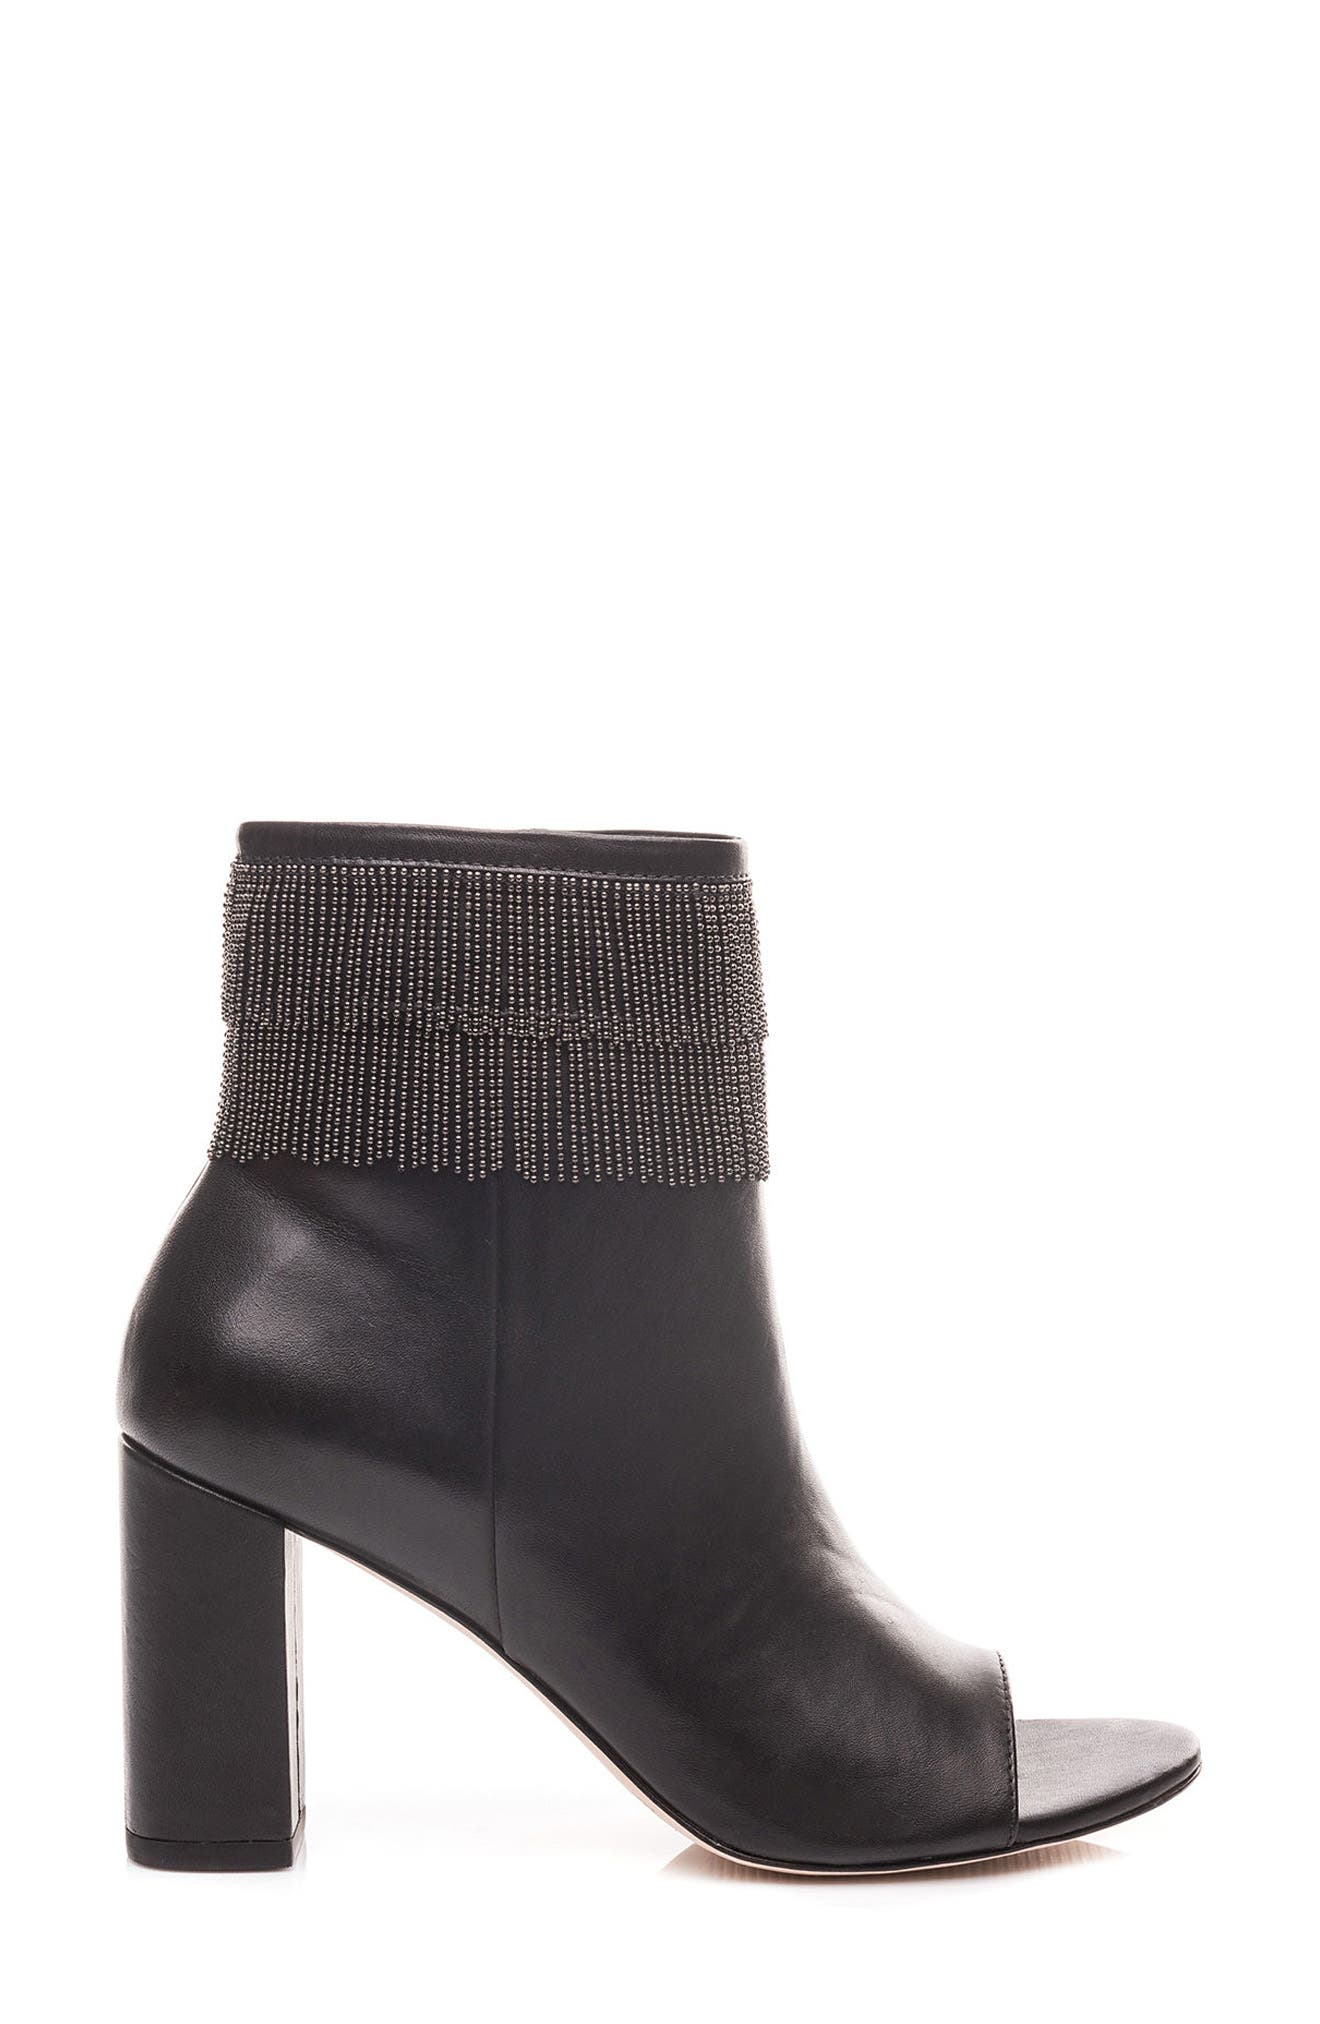 Honour Fringe Peep Toe Bootie,                             Alternate thumbnail 3, color,                             001